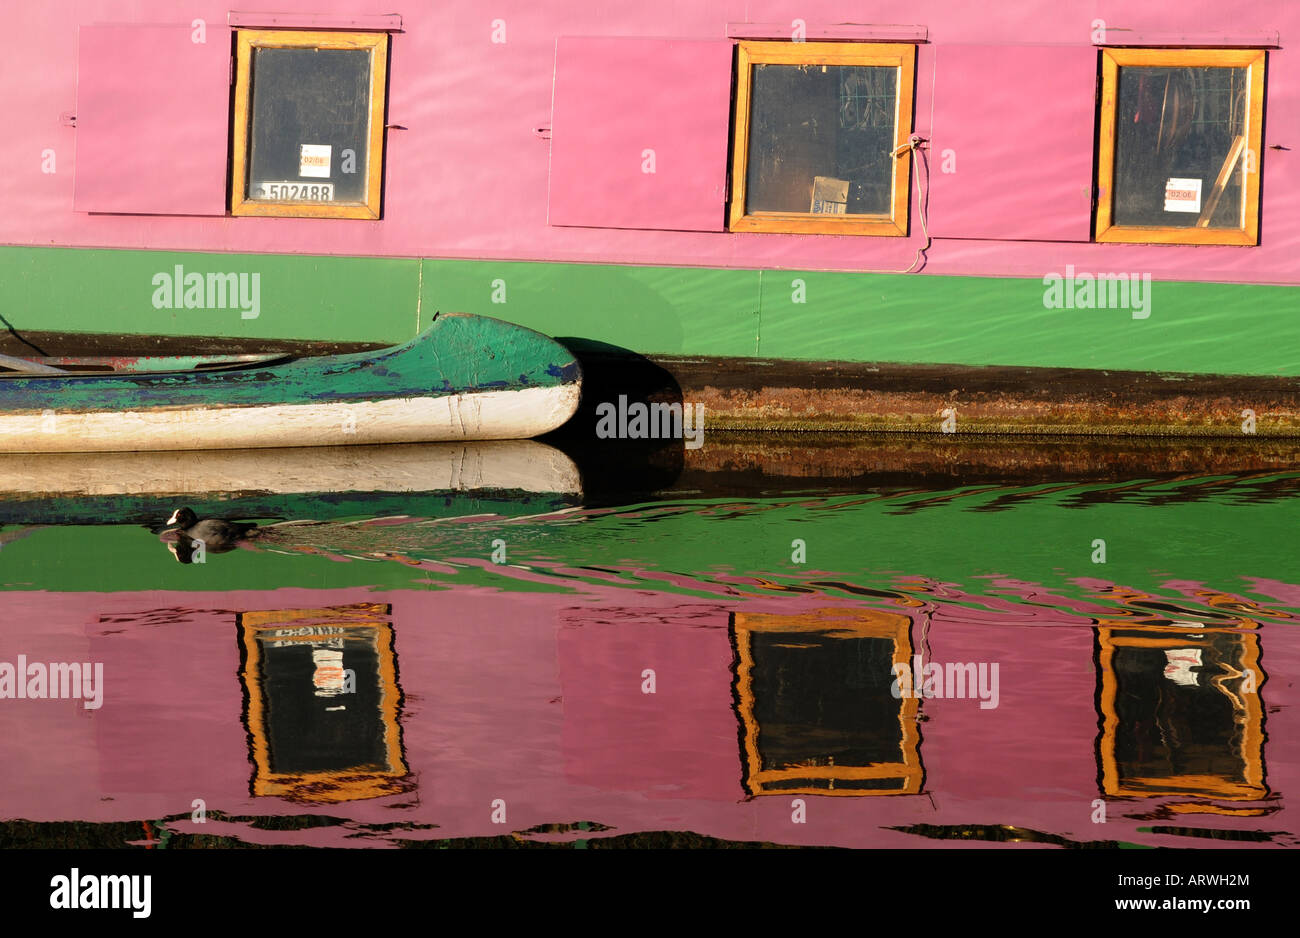 clear day in february on the Grand Union Canal near Ladbroke Grove Stock Photo